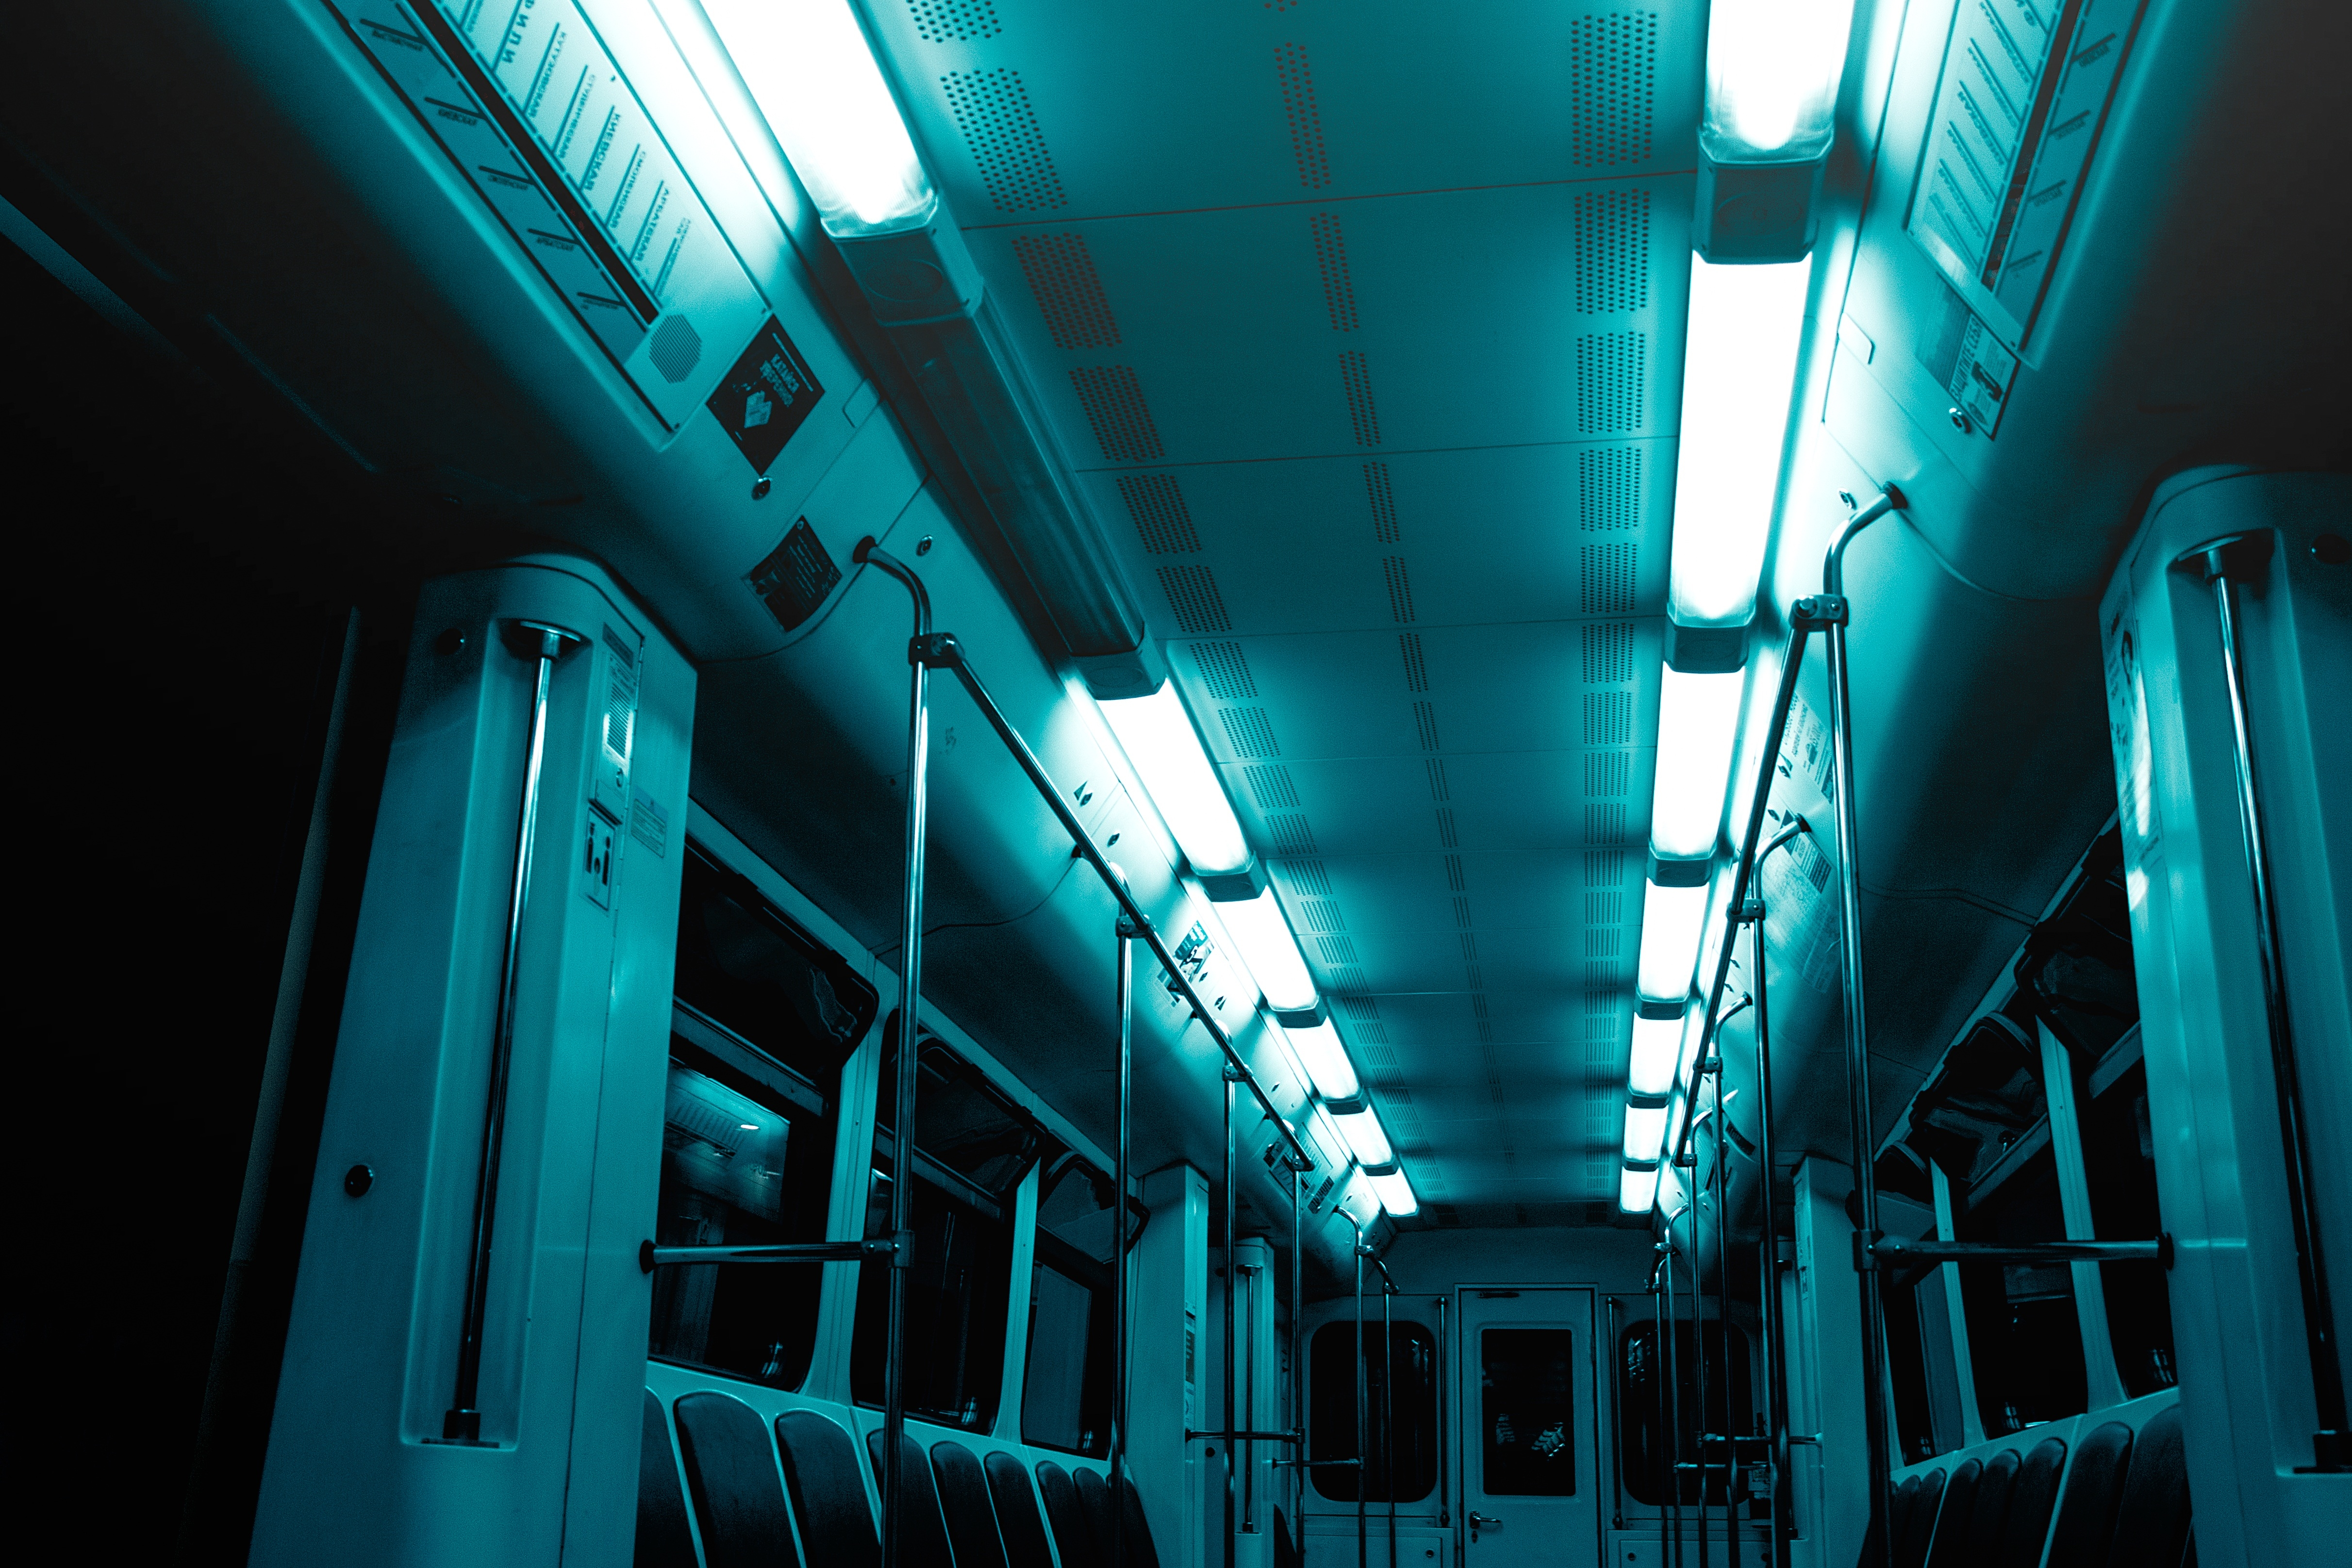 143618 Screensavers and Wallpapers Metro for phone. Download Shine, Light, Miscellanea, Miscellaneous, Car, Lamp, Illumination, Lighting, Lamps, Metro, Subway, Railway Carriage pictures for free